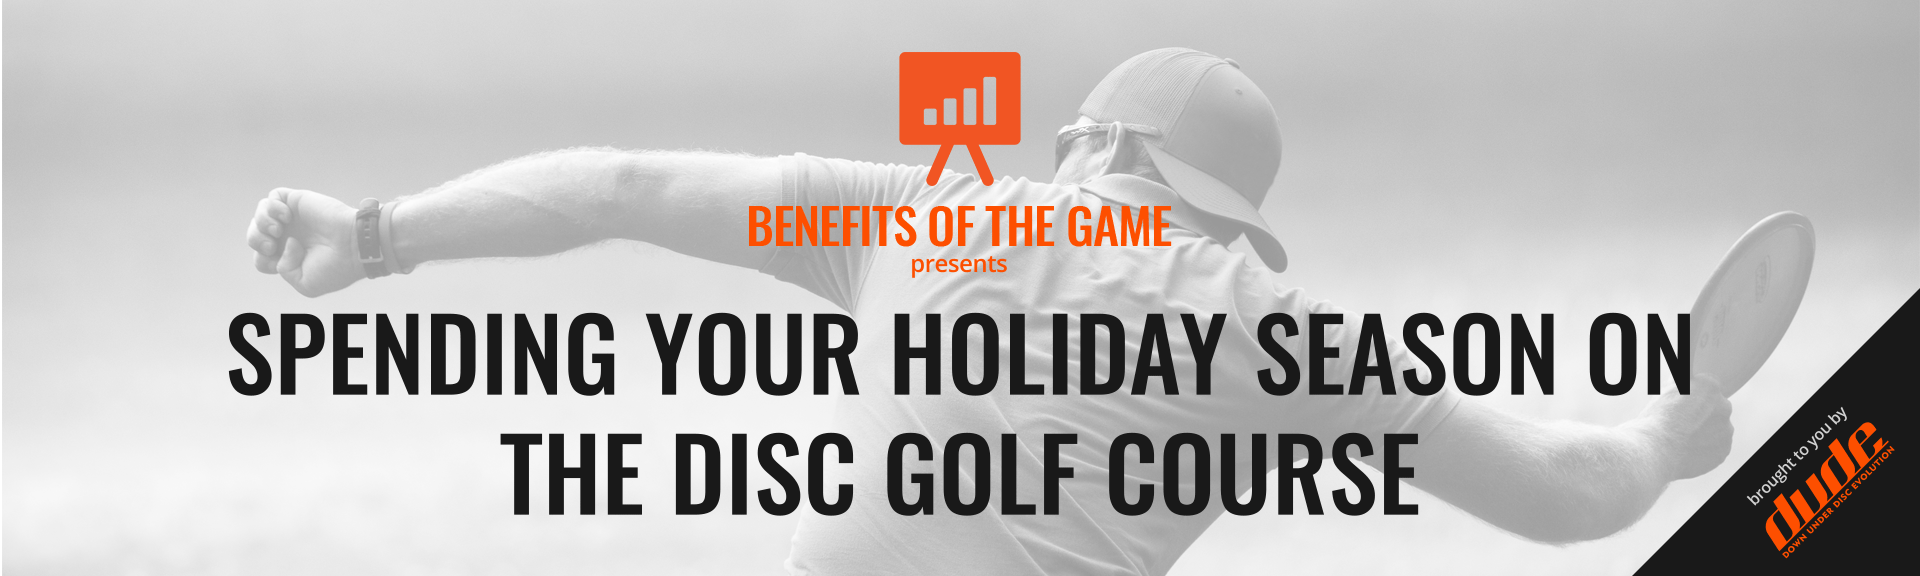 Dude Clothing Benefits of the Game Spending Your Holiday Season On The Disc Golf Course